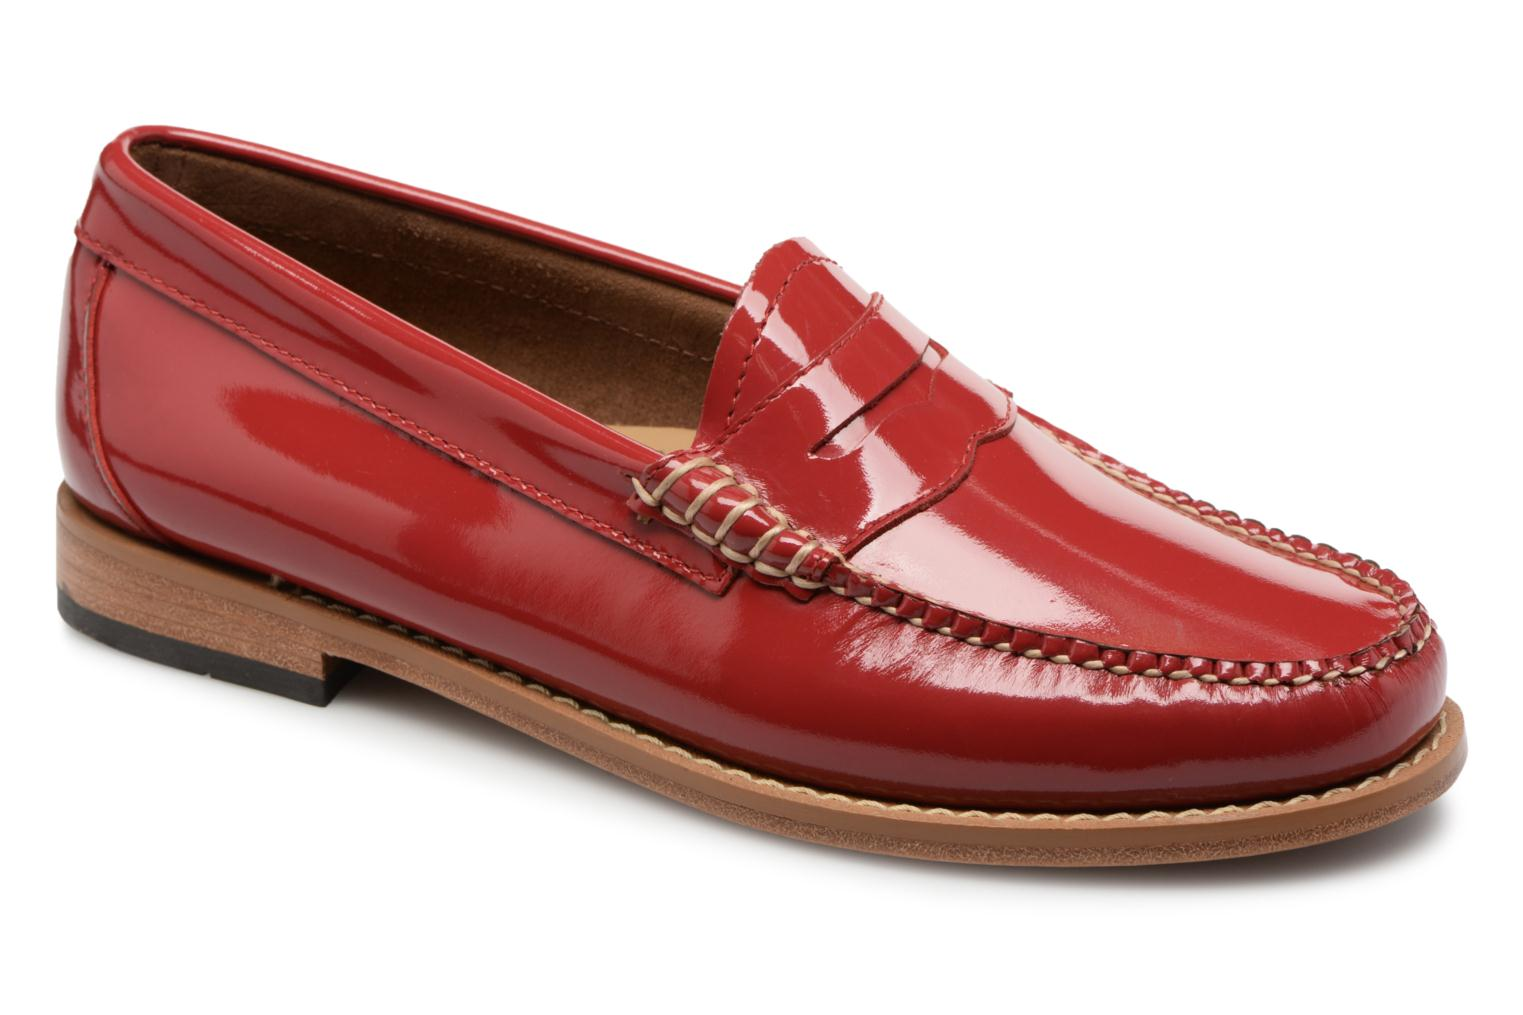 Marques Chaussure luxe femme G.H. Bass femme WEEJUN Penny wheel 1TR Tango Red Patent Leather